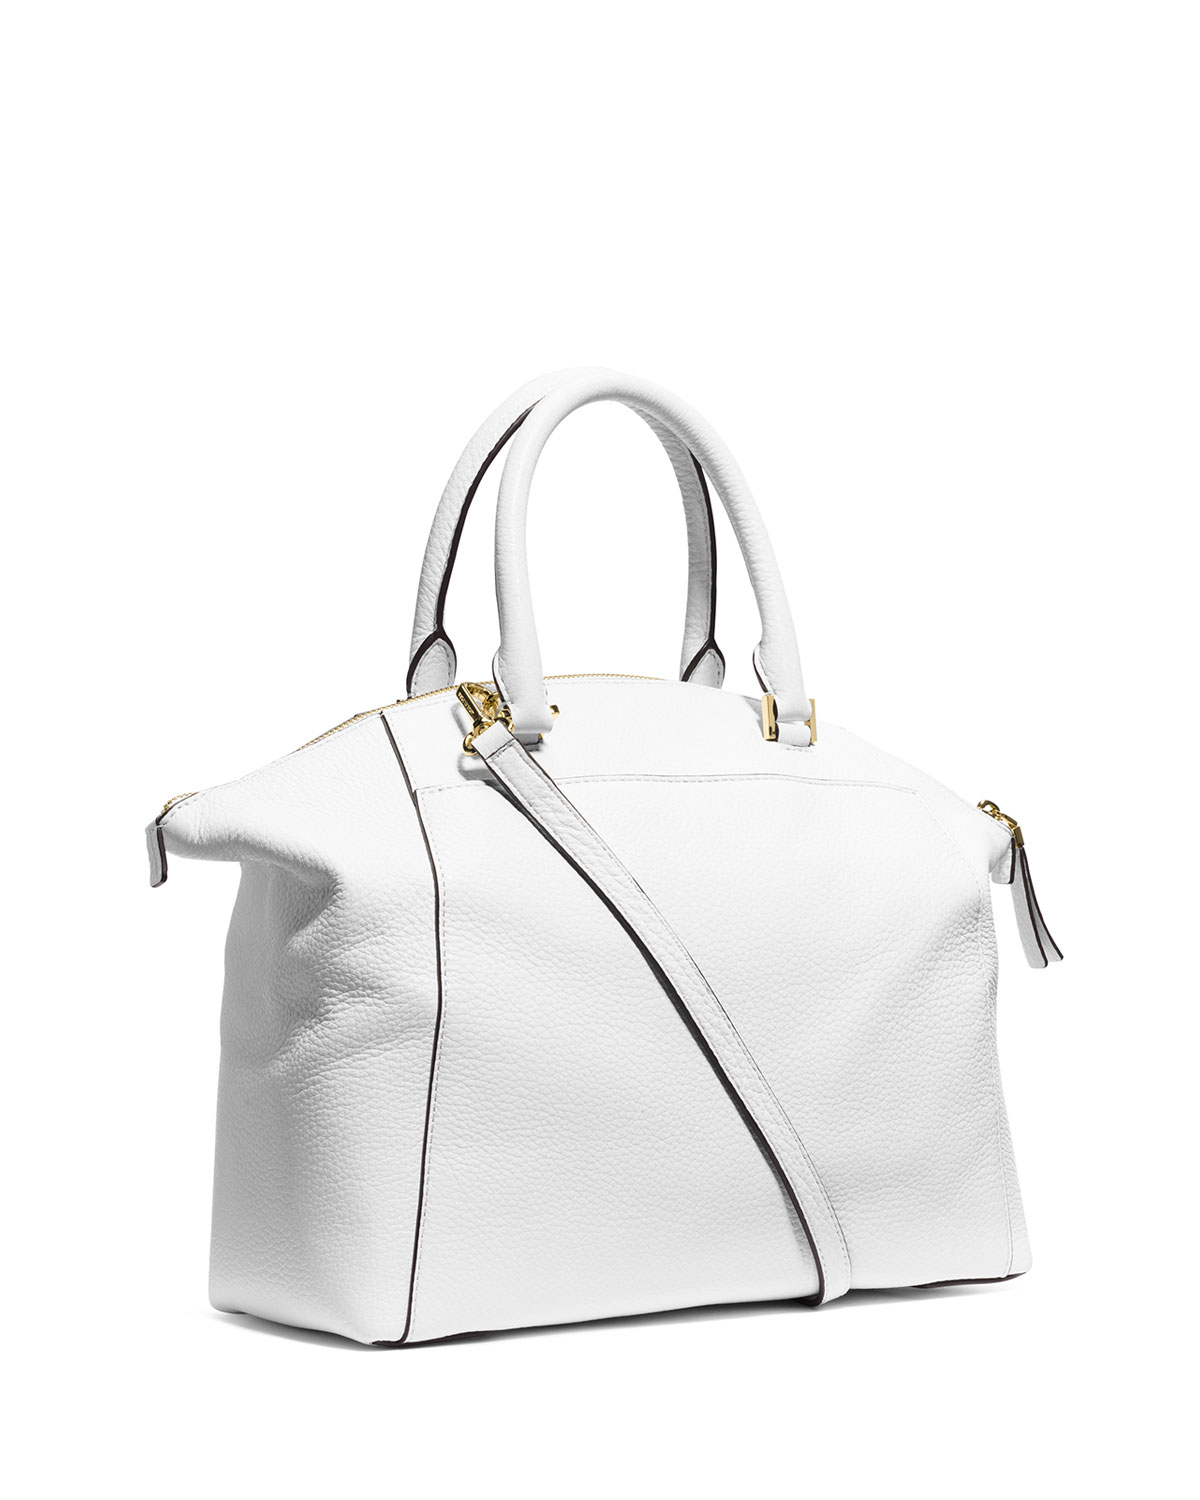 6607a475fc9a Gallery. Previously sold at: Neiman Marcus · Women's Michael By Michael  Kors Riley